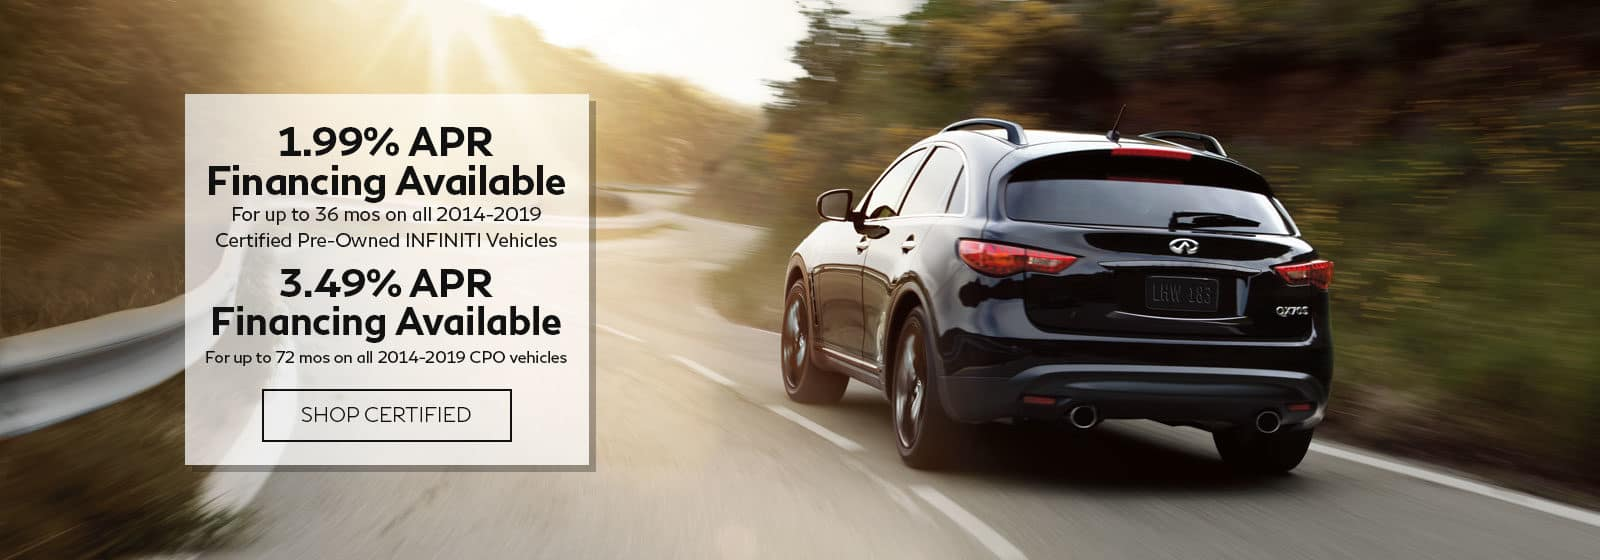 INFINITI Certified Preowned APR offer NJ